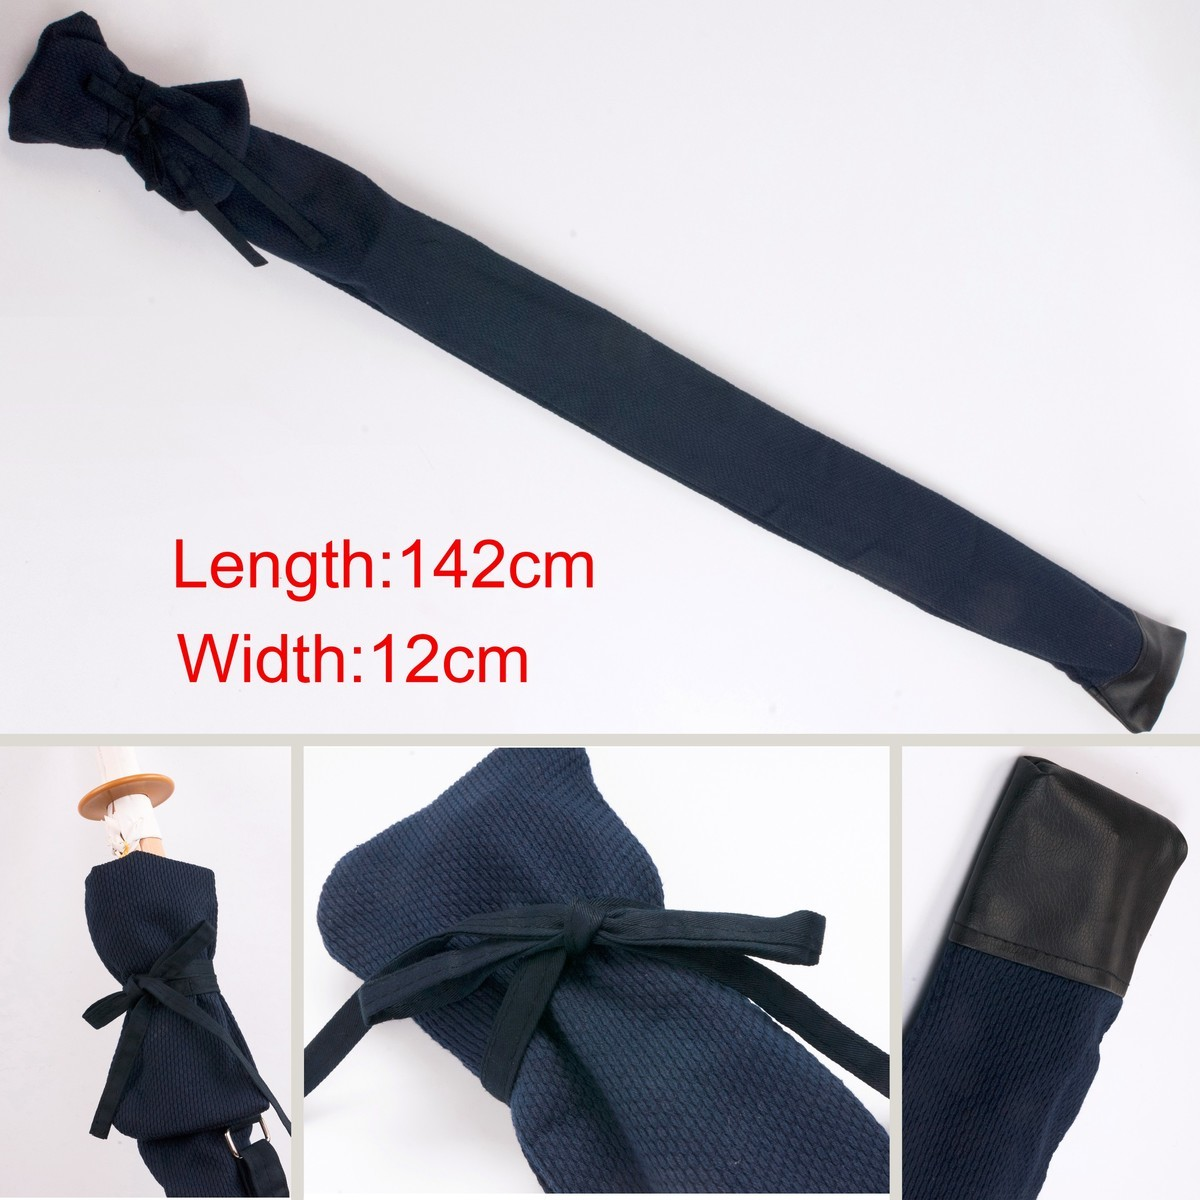 Cotten Leather Kendo Aikido Iaido Sword Bag  Japanese Carry Bag With Strap Hold 2 Swords Length 142cm Width 12cm Free Shipping